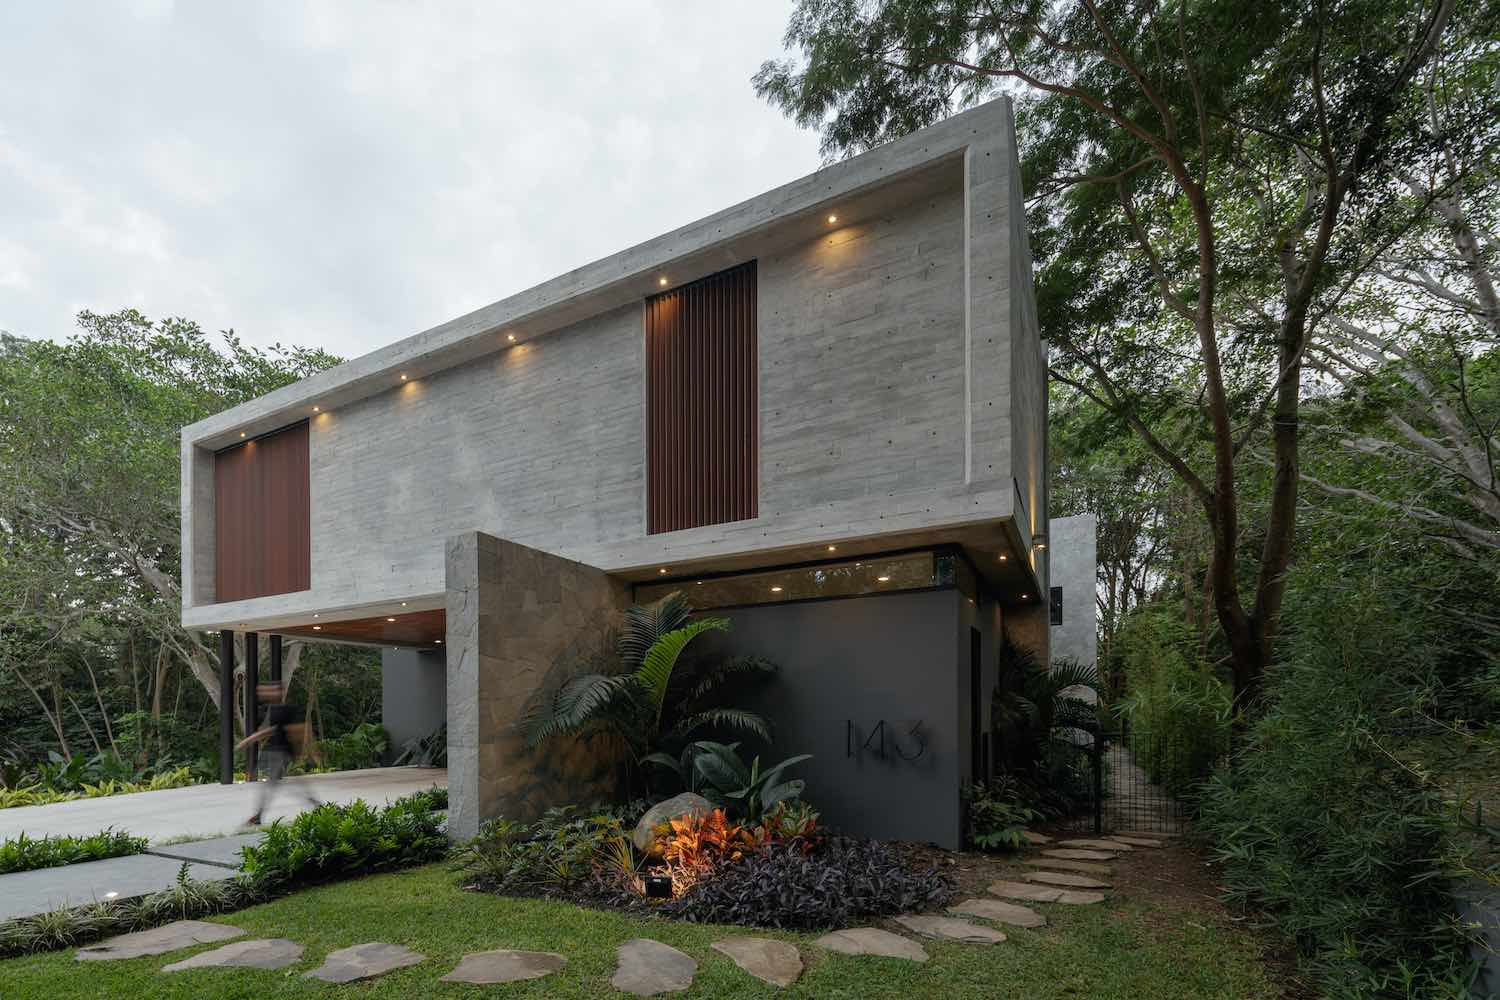 Entreparotas House in Colima, Mexico designed by Di Frenna Arquitectos